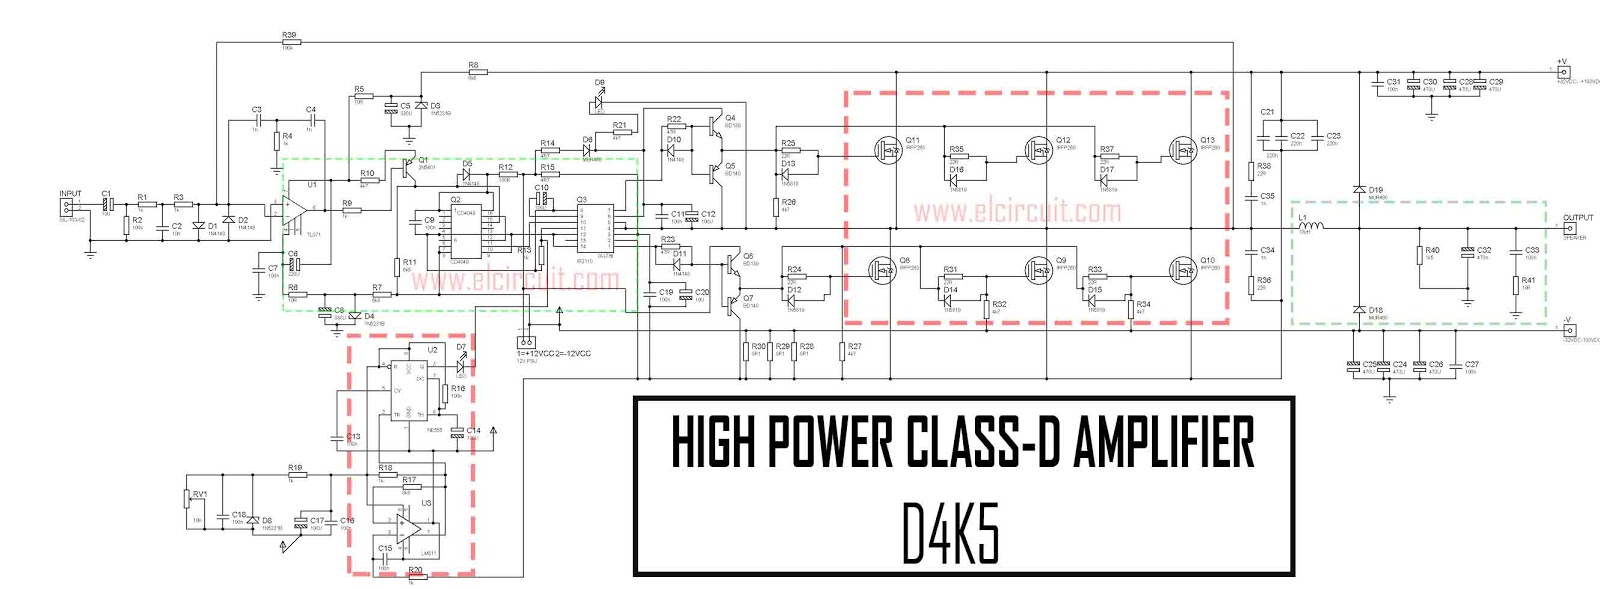 small resolution of power amplifier class d d4k5 4500w circuit diagram